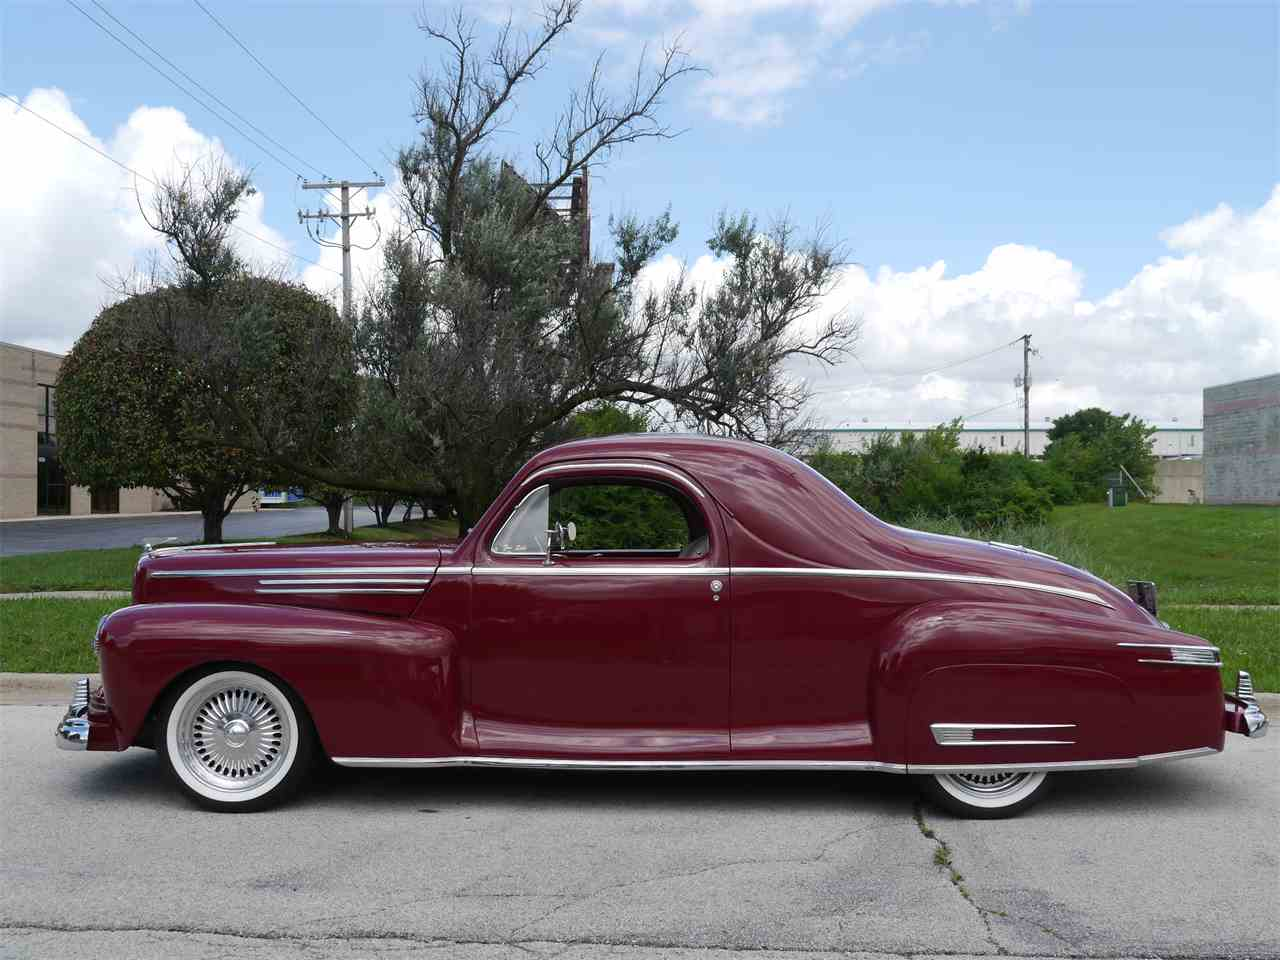 results for sale door scottsdale custom auction coupe lincoln zephyr